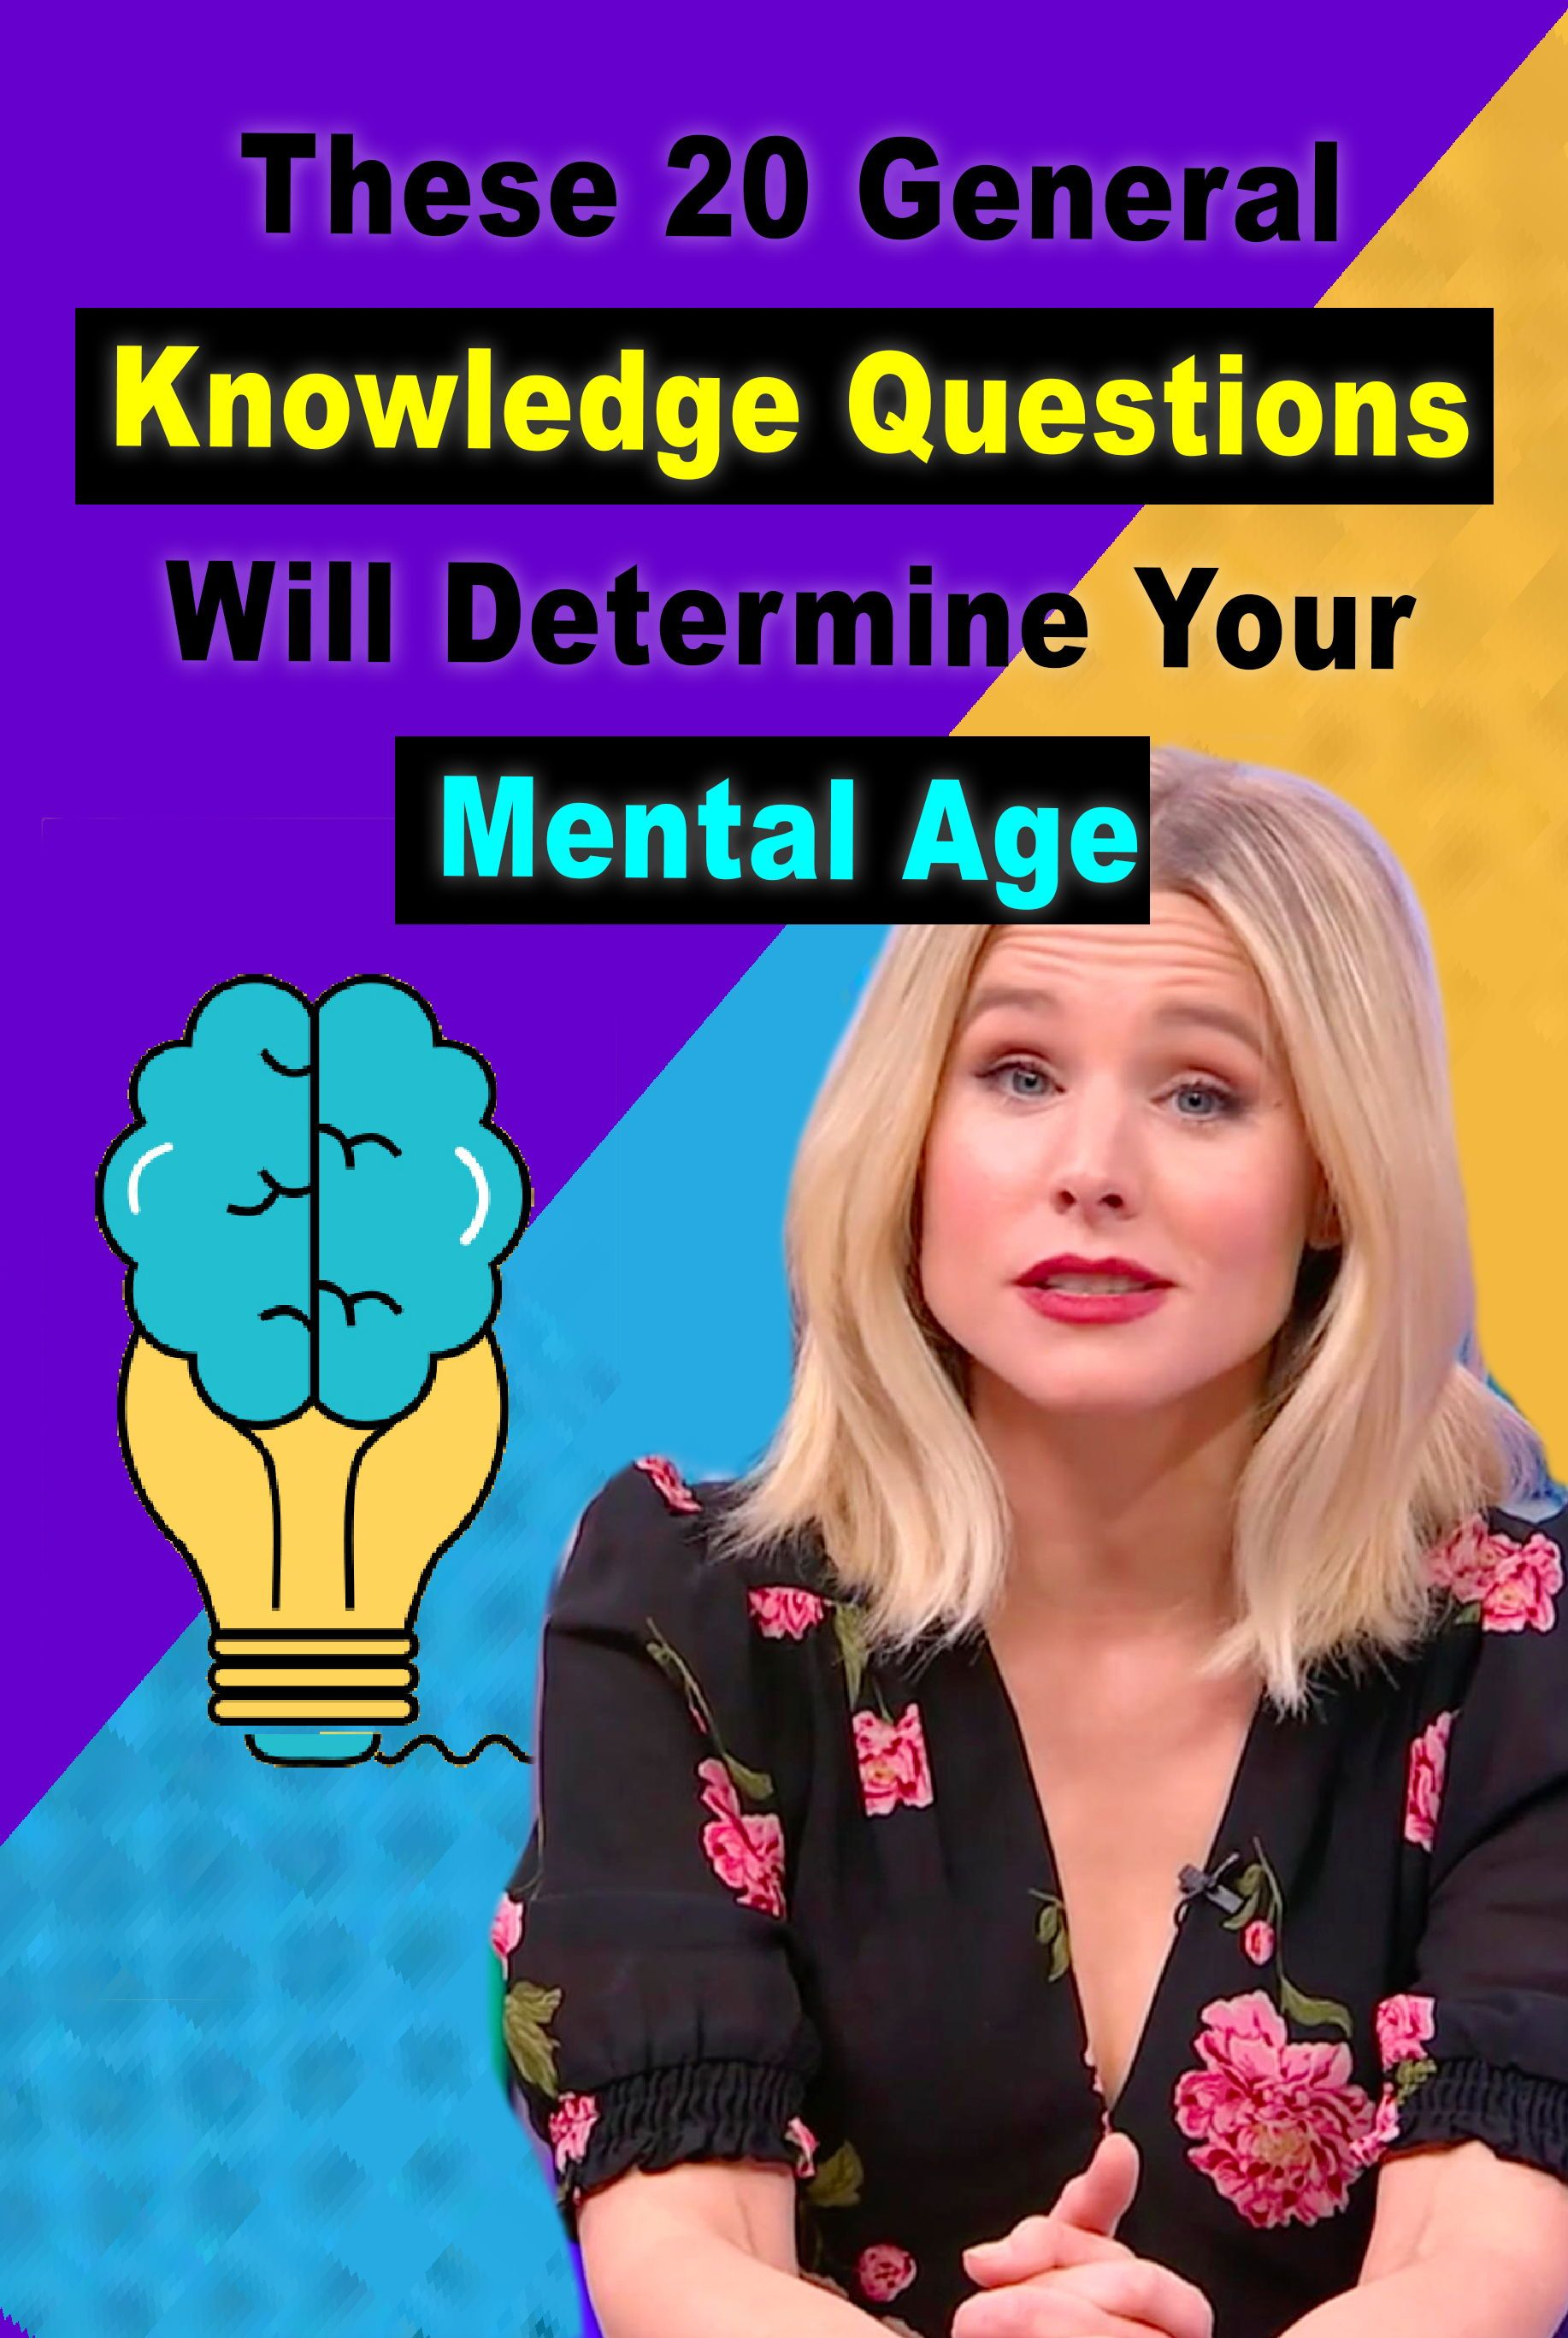 Quiz These 20 General Knowledge Questions Will Determine Your Mental Age Knowledge Quiz Brain Quiz This Or That Questions This mental age quiz will ask you a few questions about your life perceptions and what you feel about certain things in order to reveal your actual mental age. pinterest